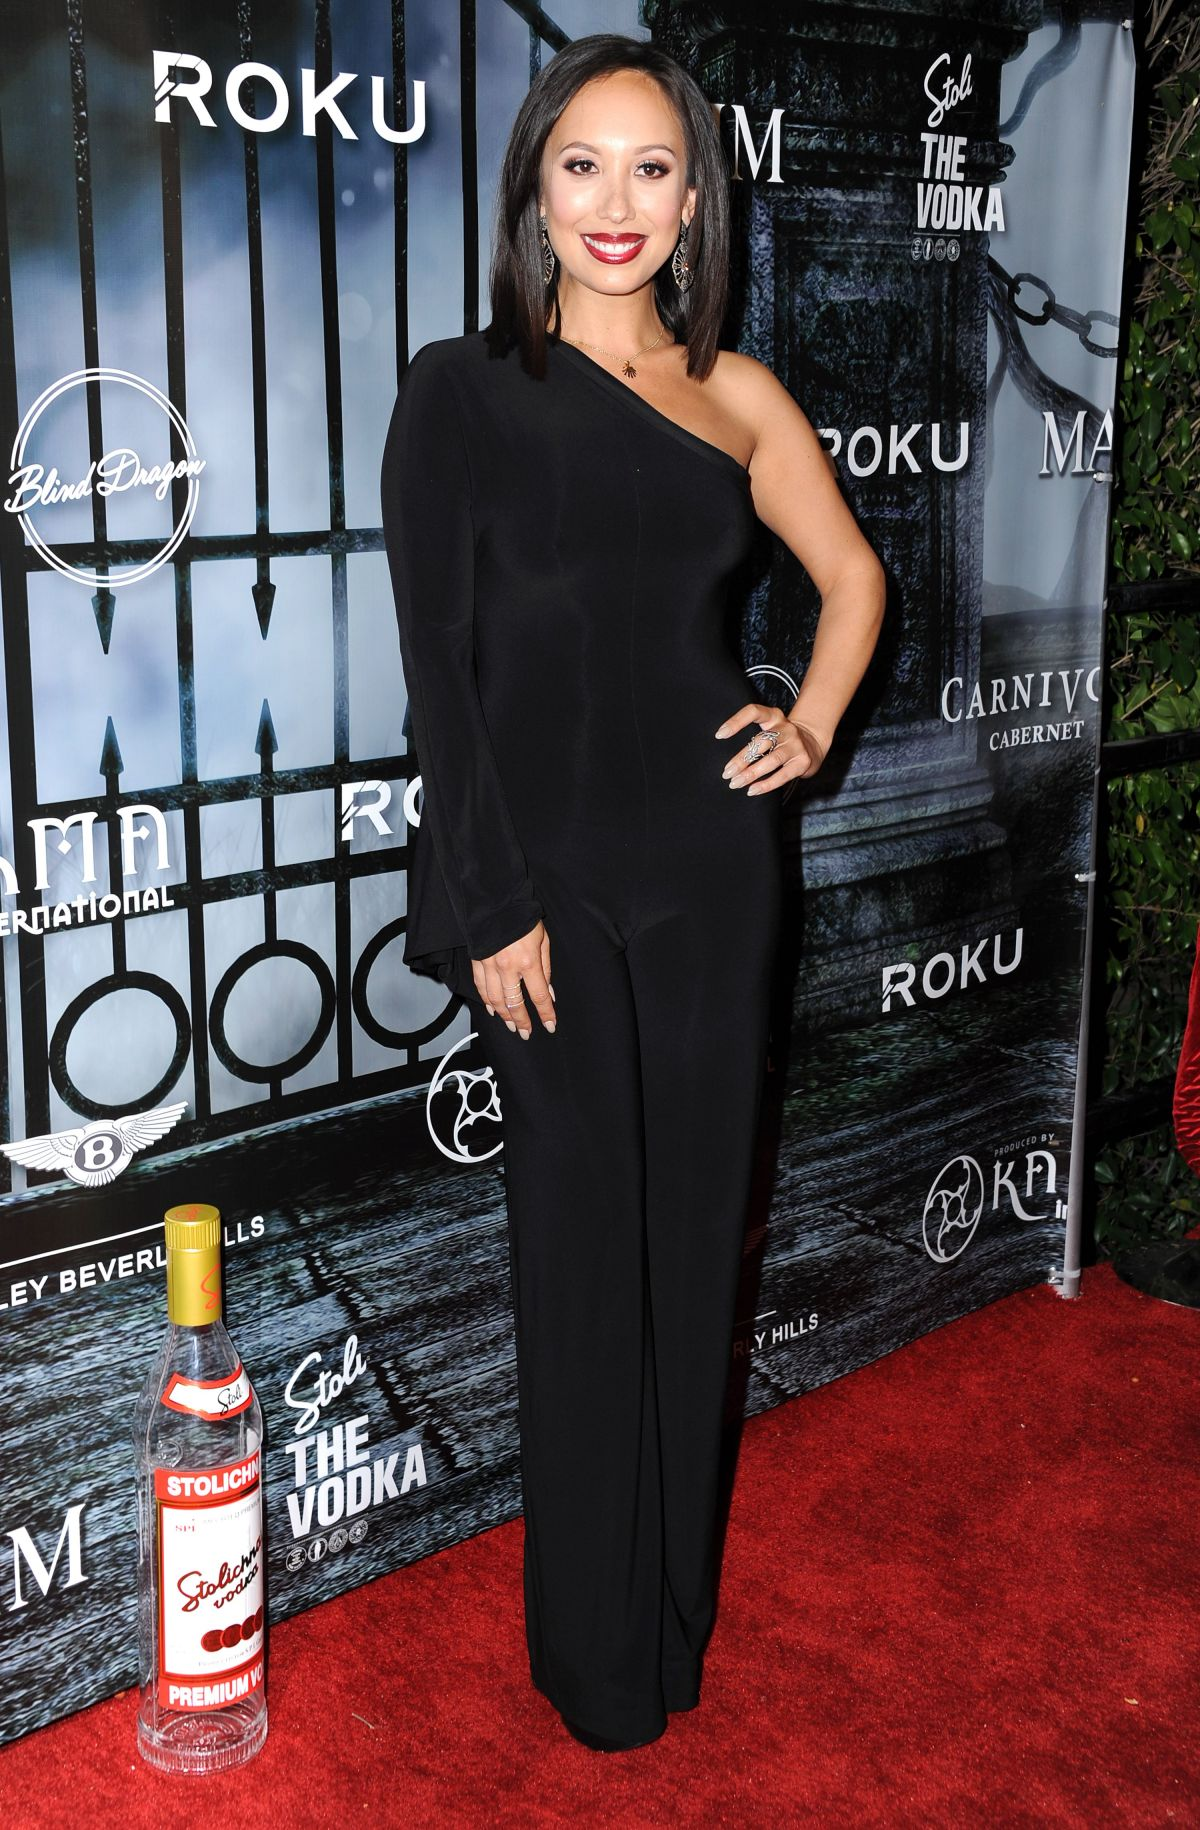 CHERYL BURKE at Maxim Magazine's Official Halloween Party in ...